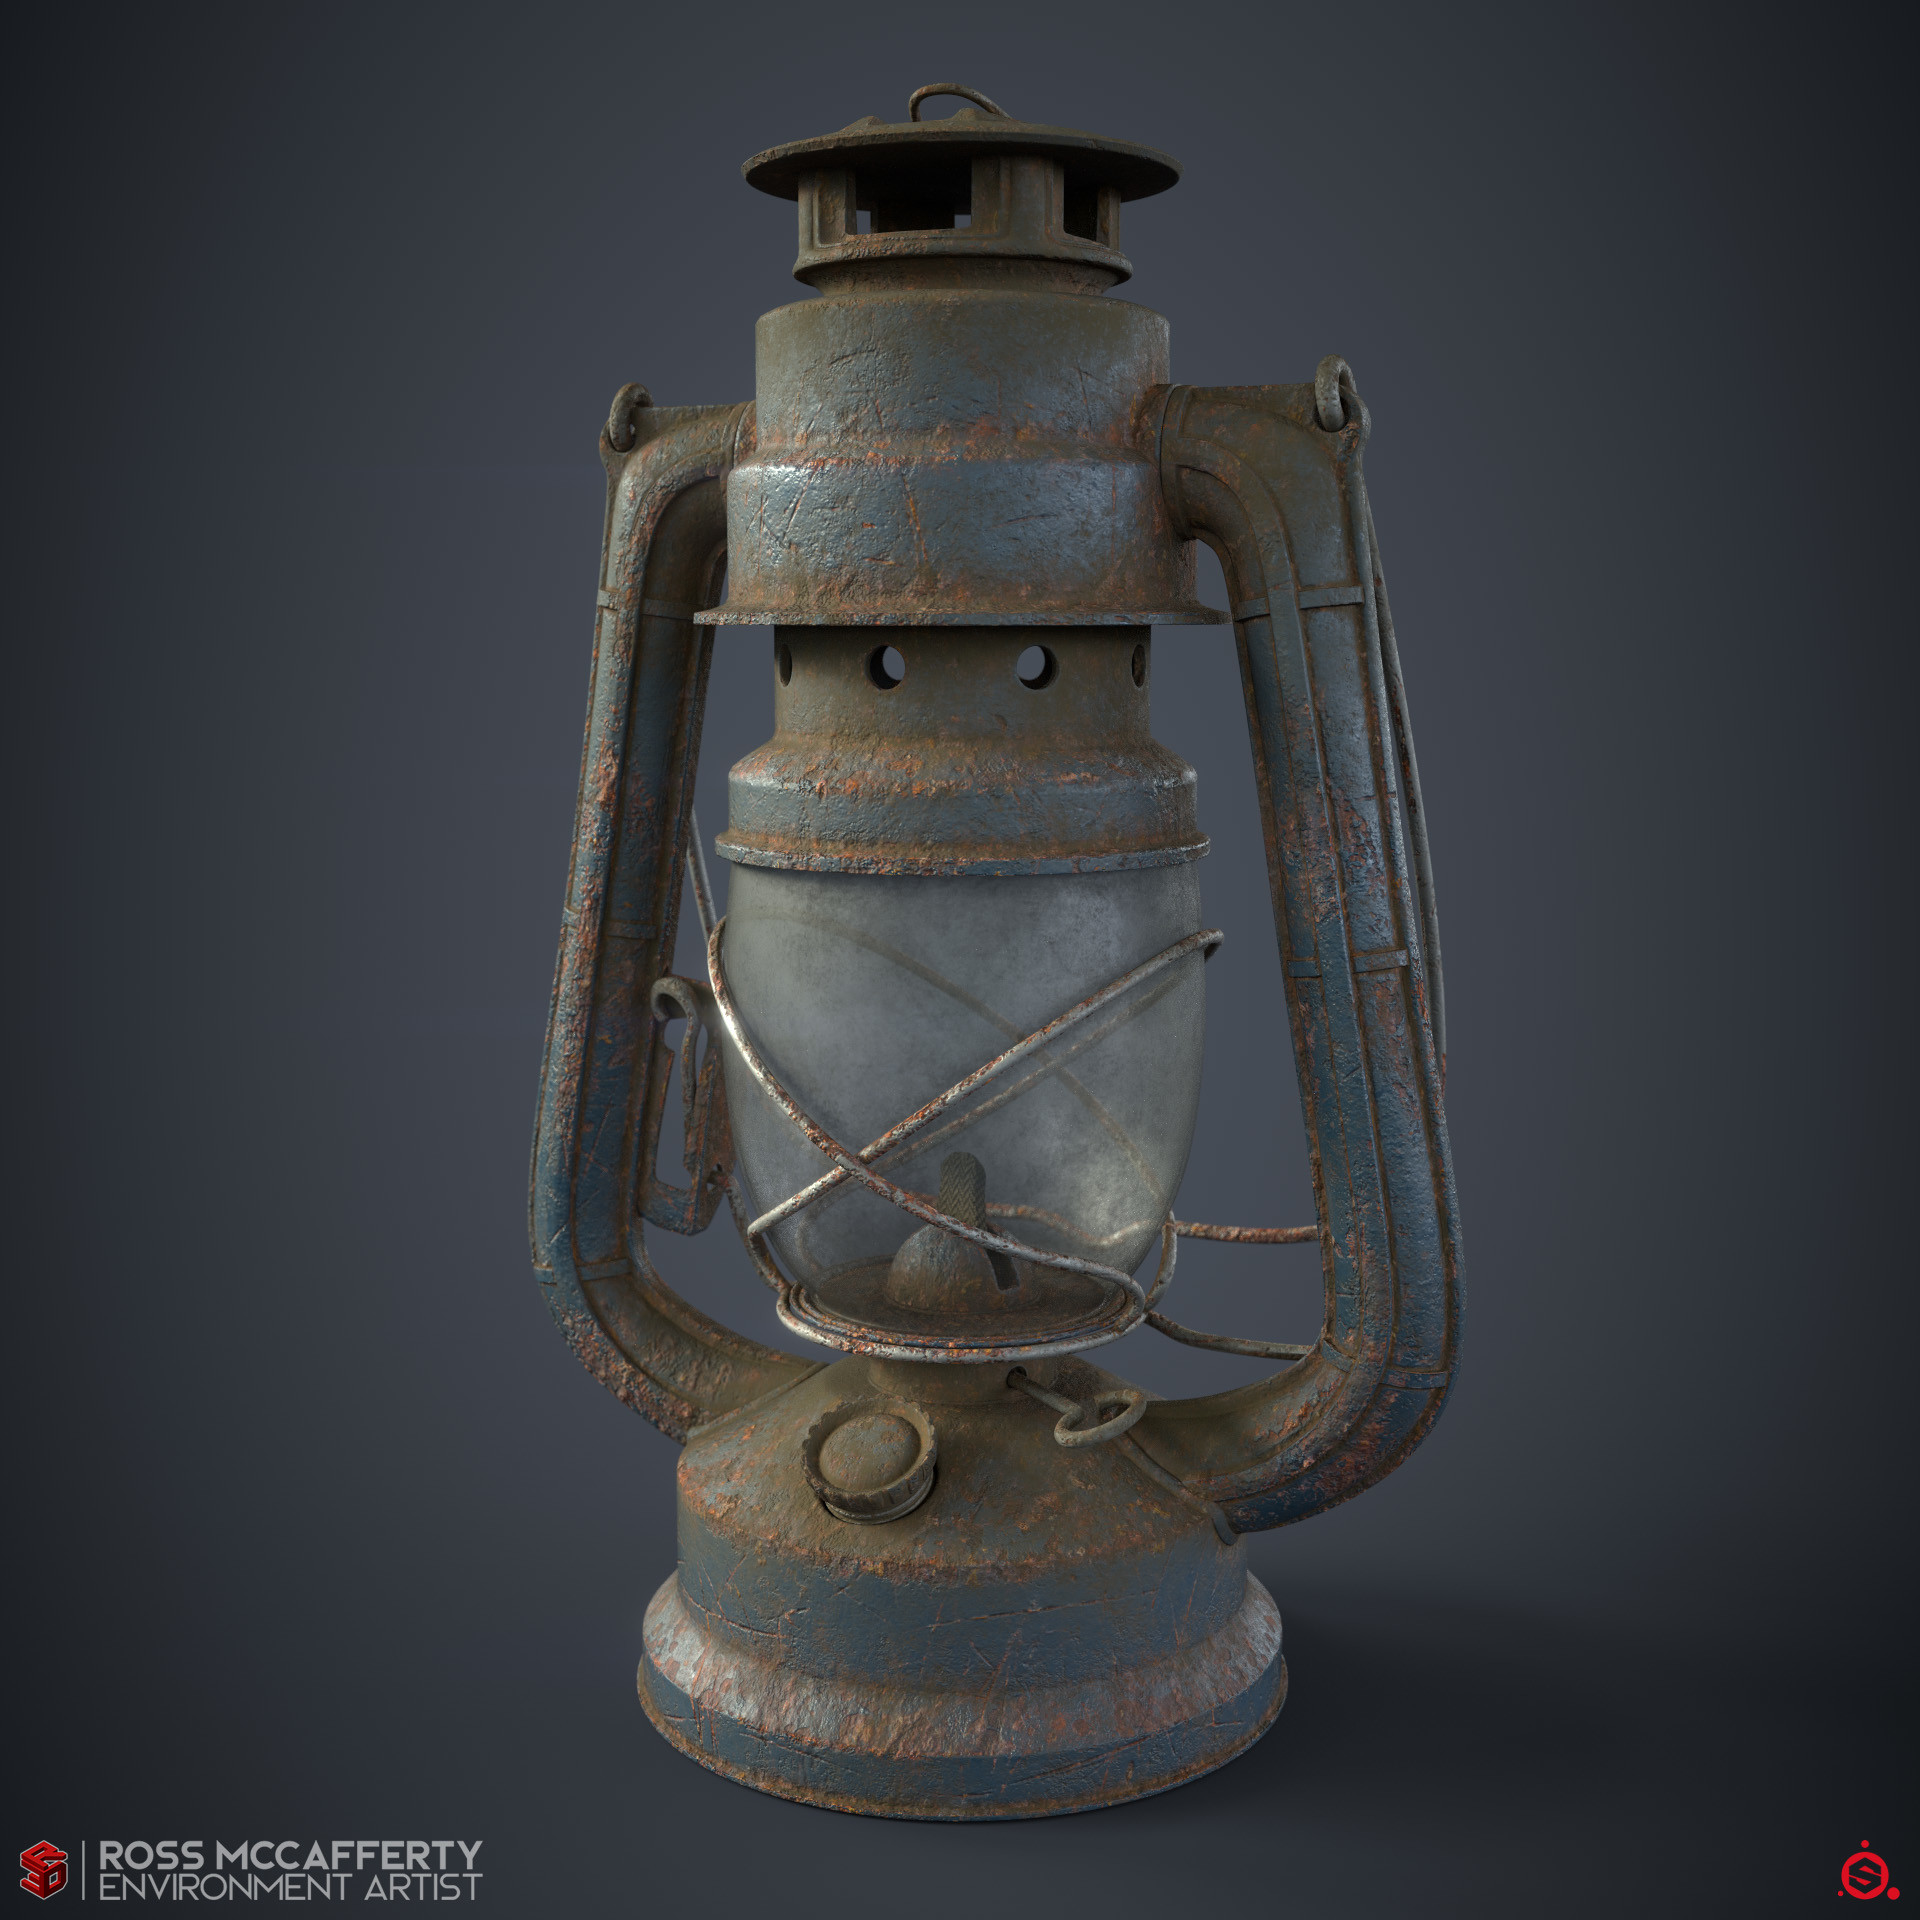 Ross mccafferty lantern 01